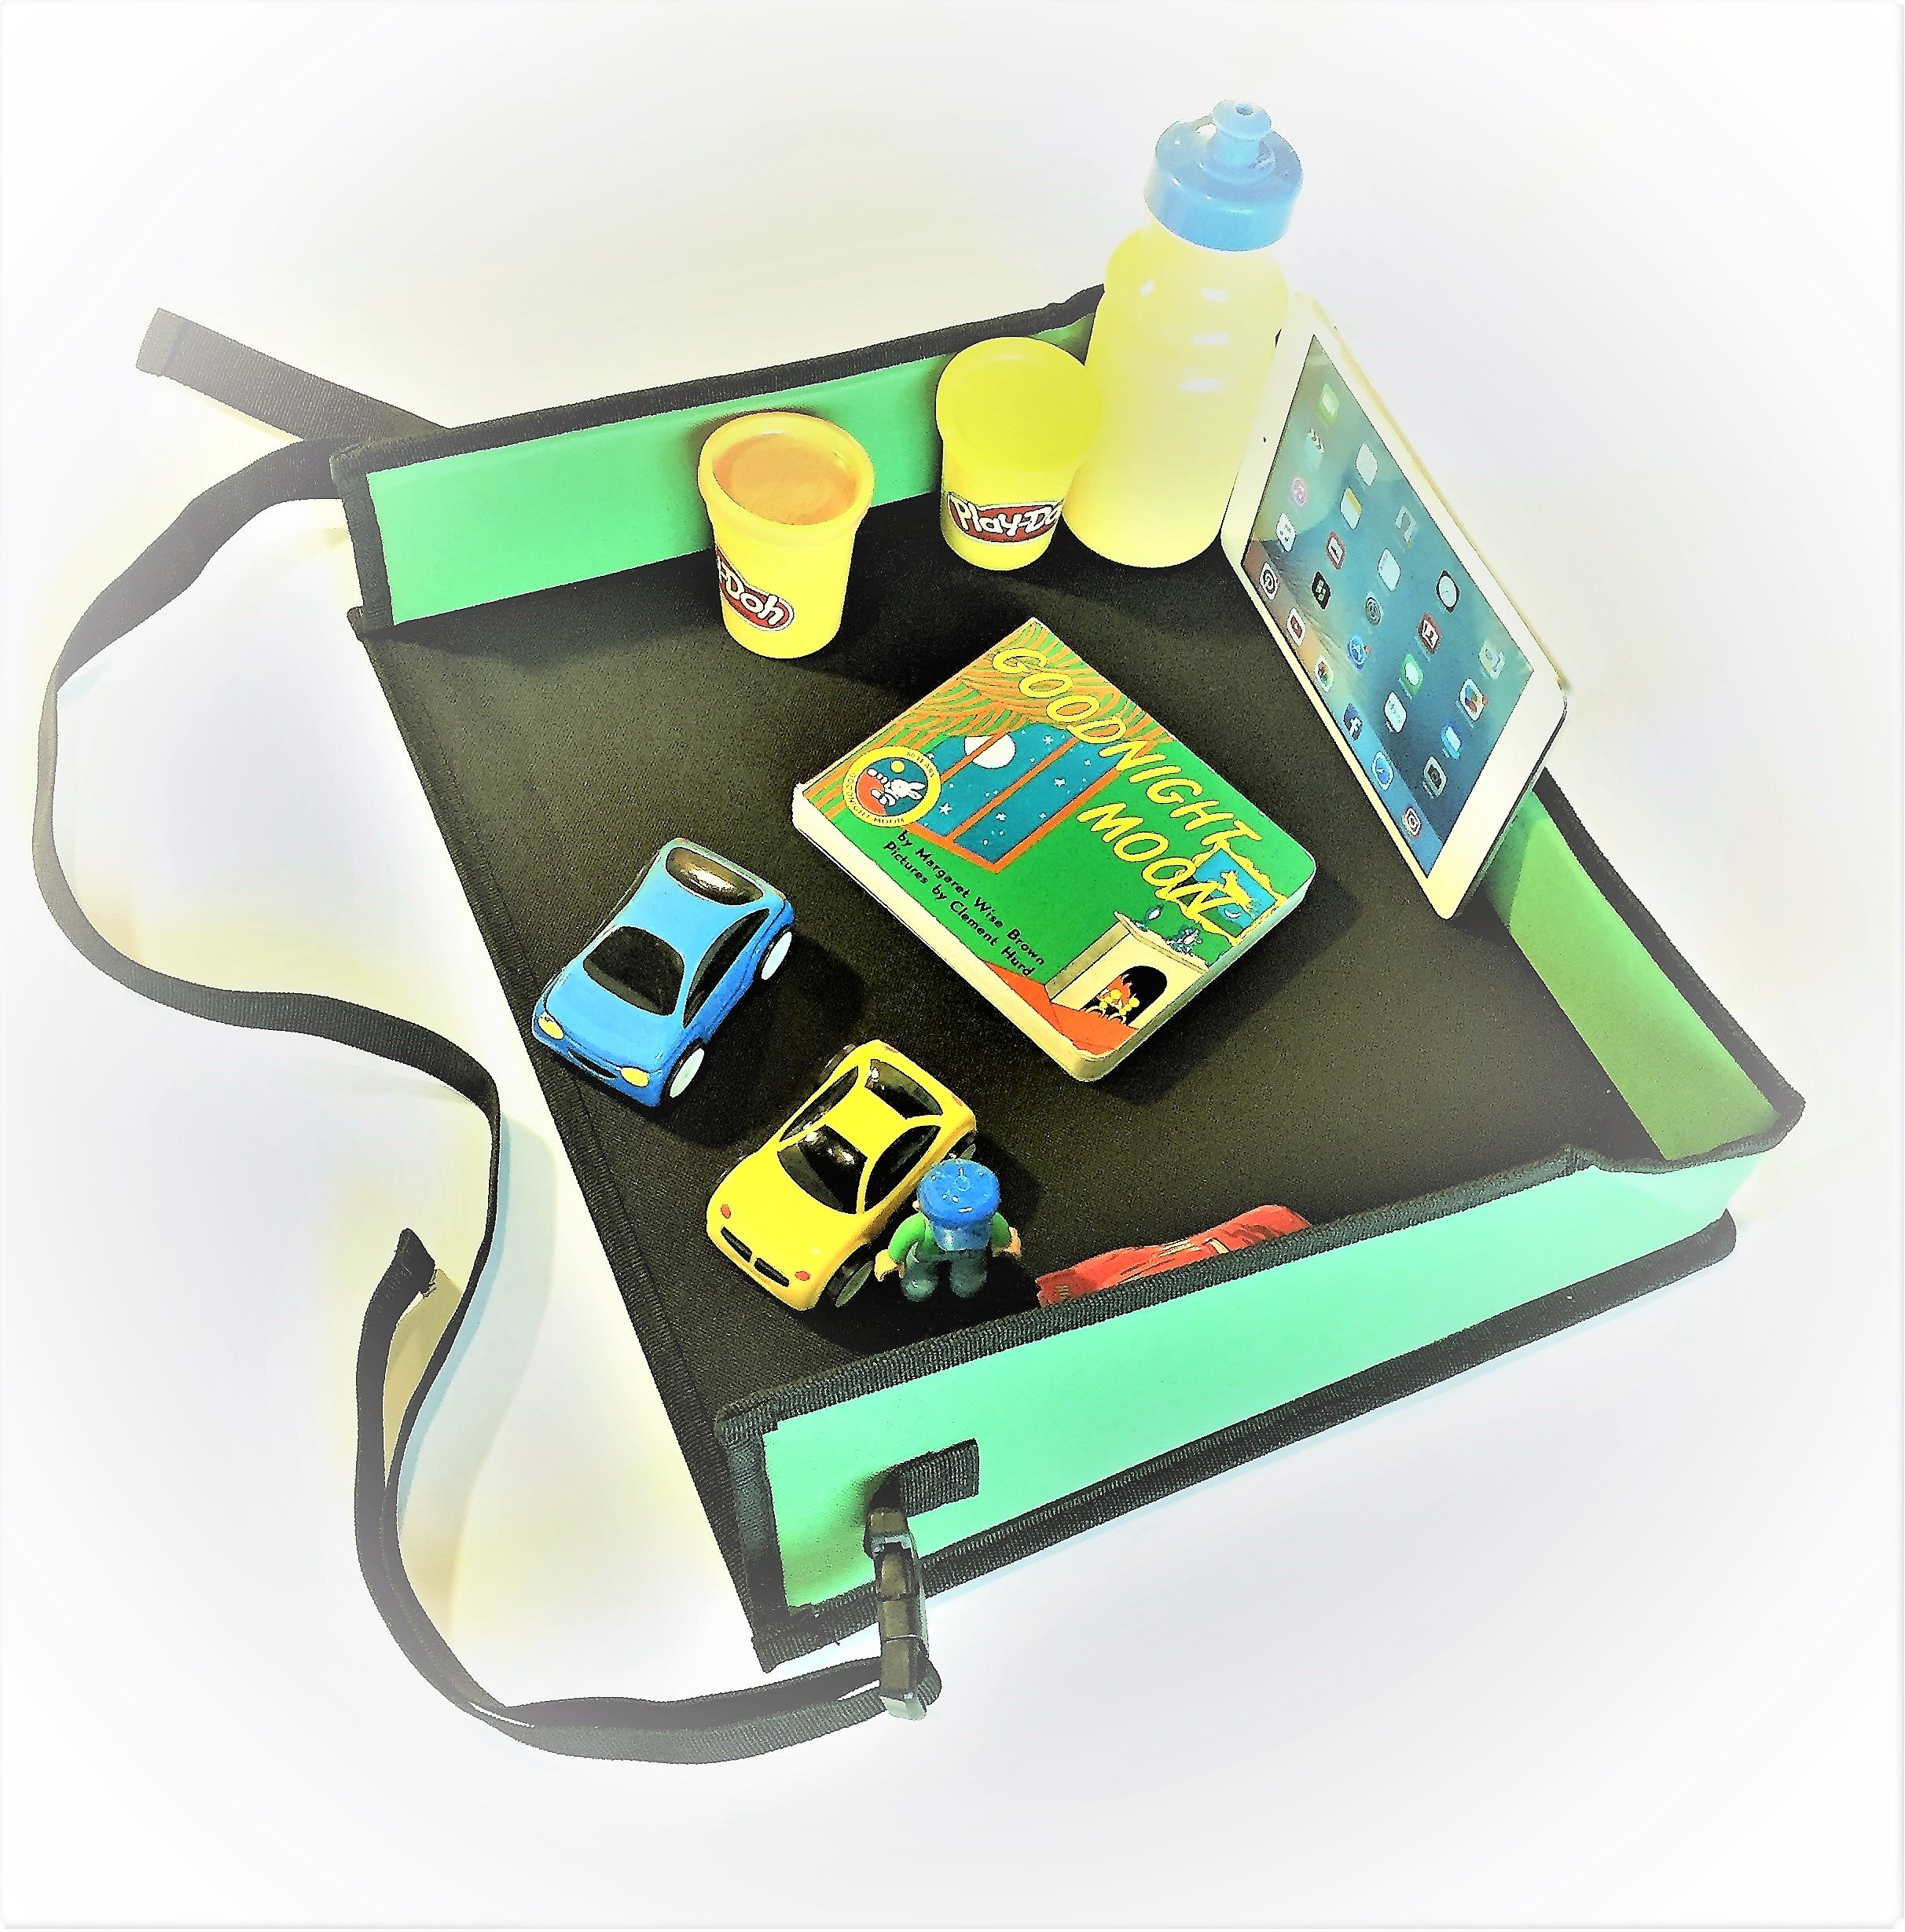 Batalee Kids Travel Tray for Car Toddlers Snack Play Activity Tray Portable Lap Tray with Mesh Pockets for Cars Seat, Strollers, Planes - Quality Material Tall Side Walls - Perfect Car Organizer by Batalee (Image #6)